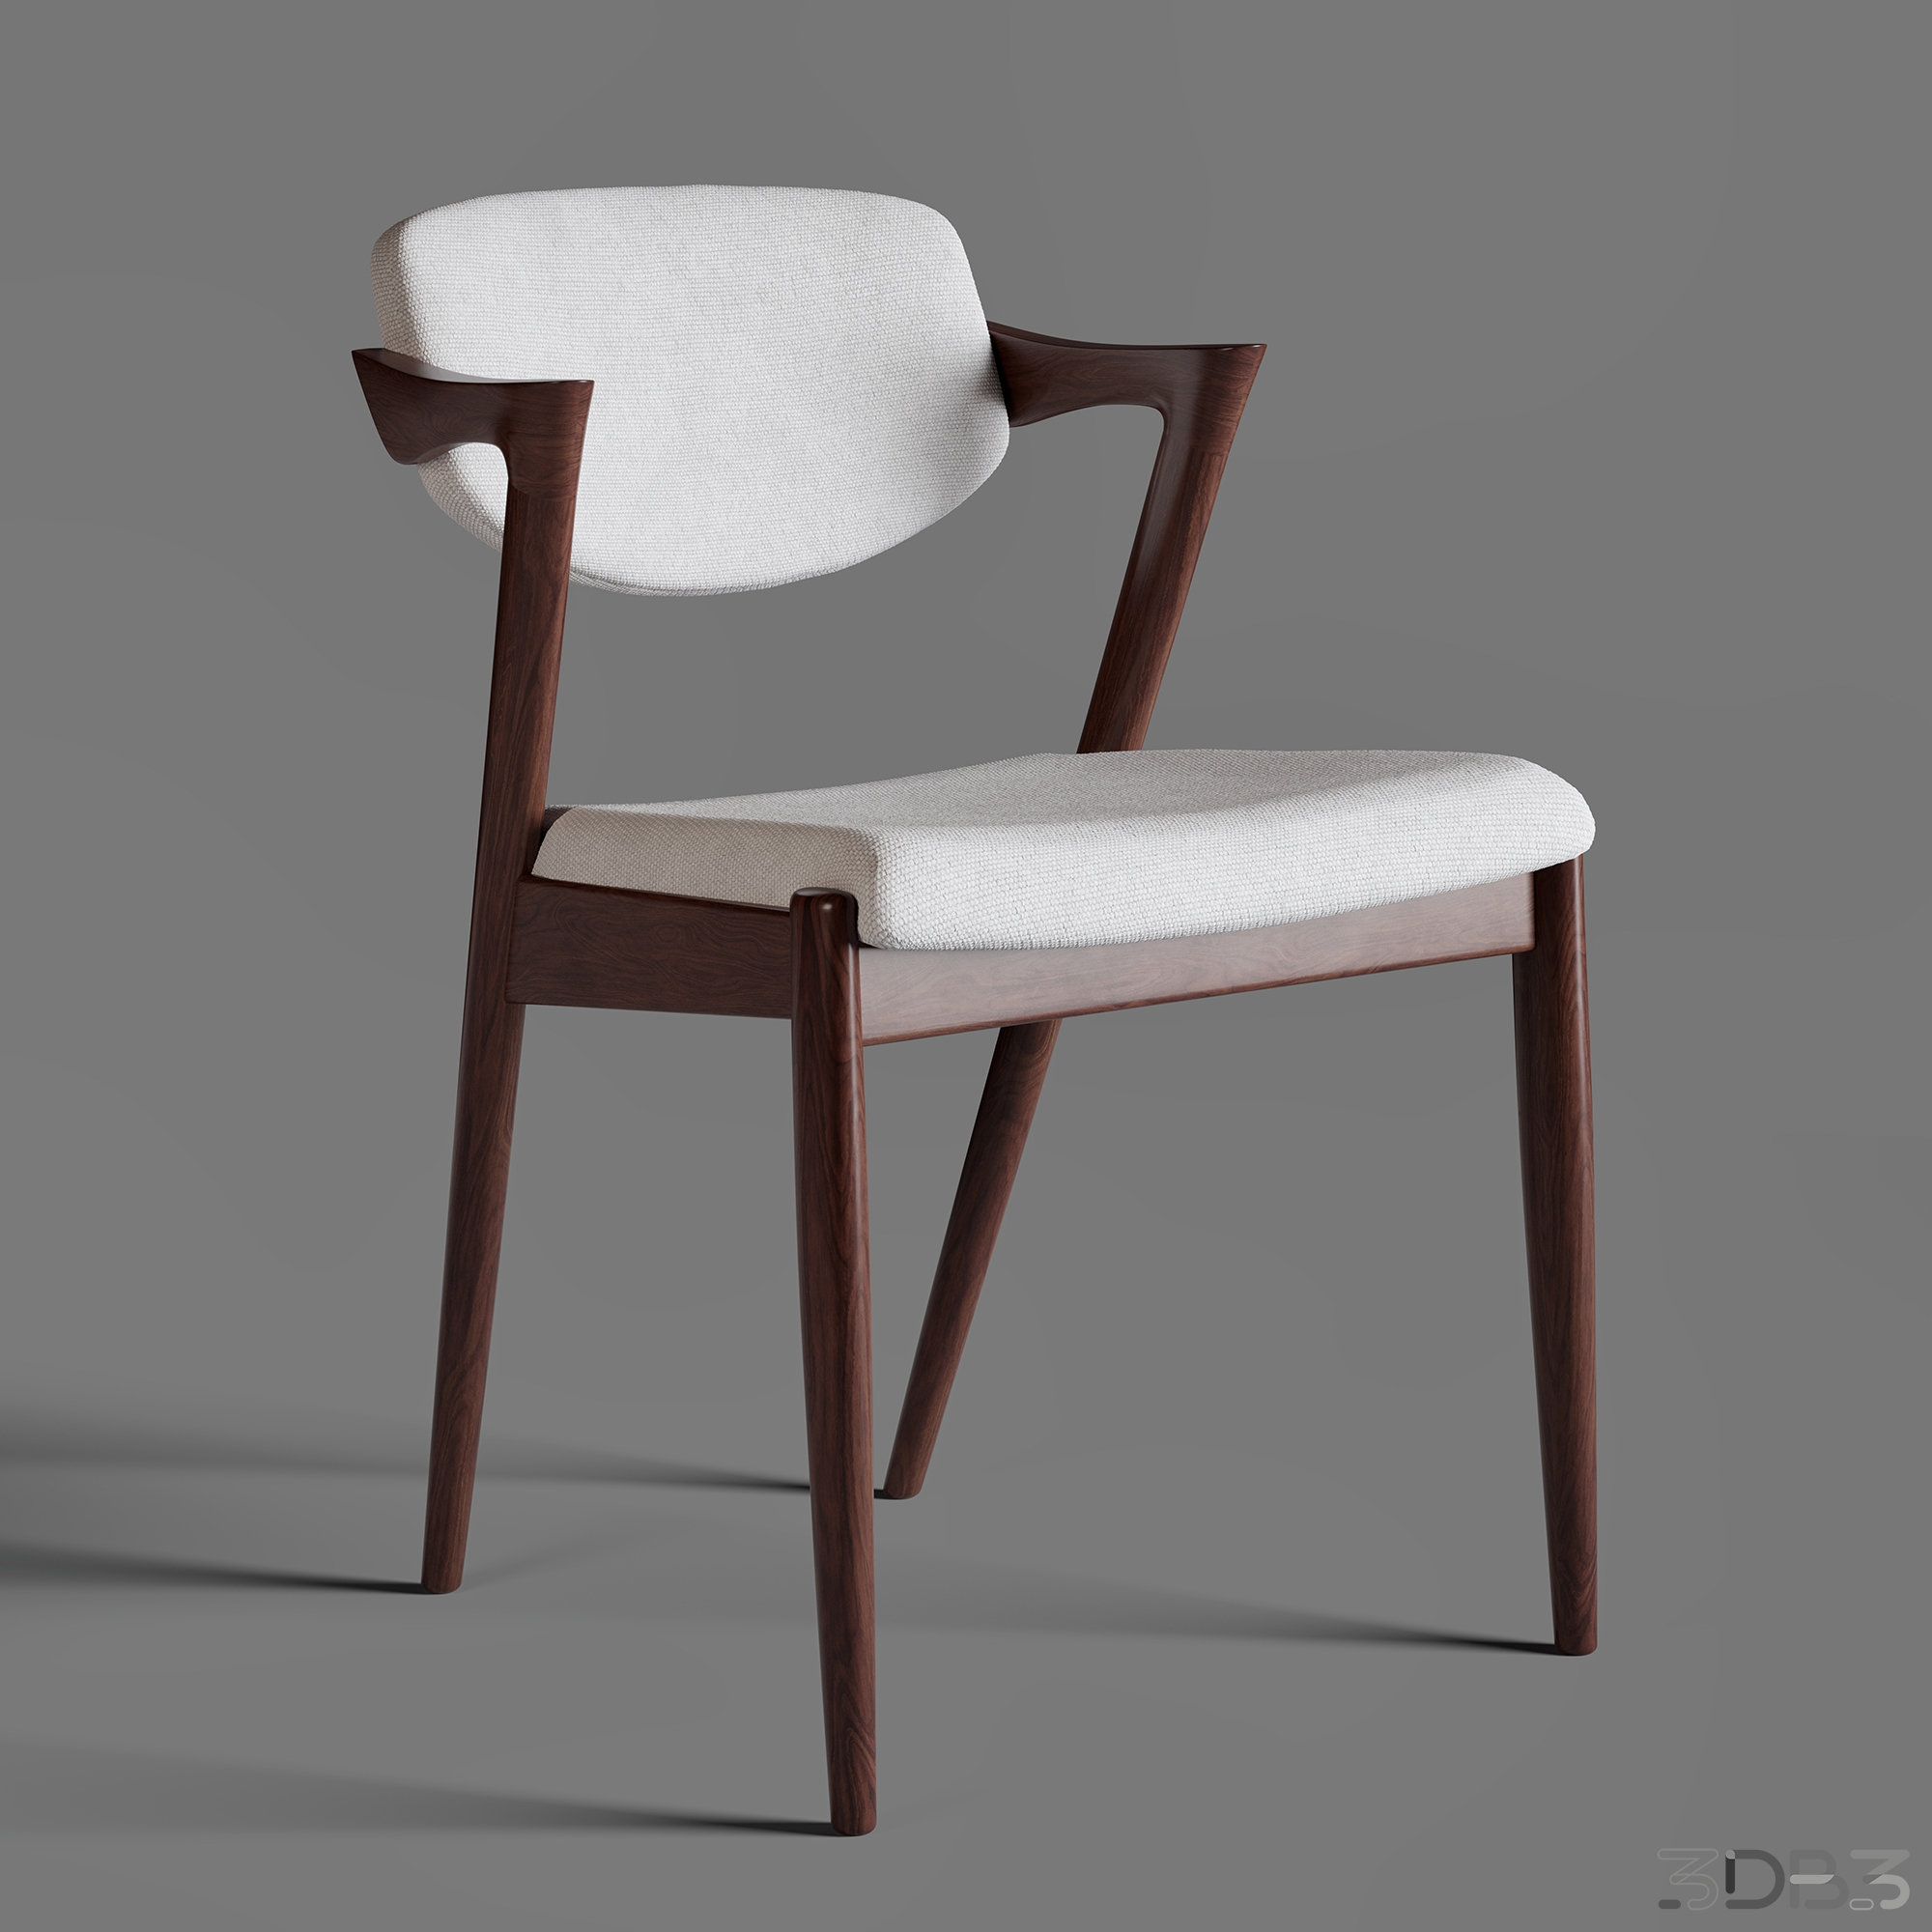 Chair Nº42 is a master piece designed by Kai Kristiansen